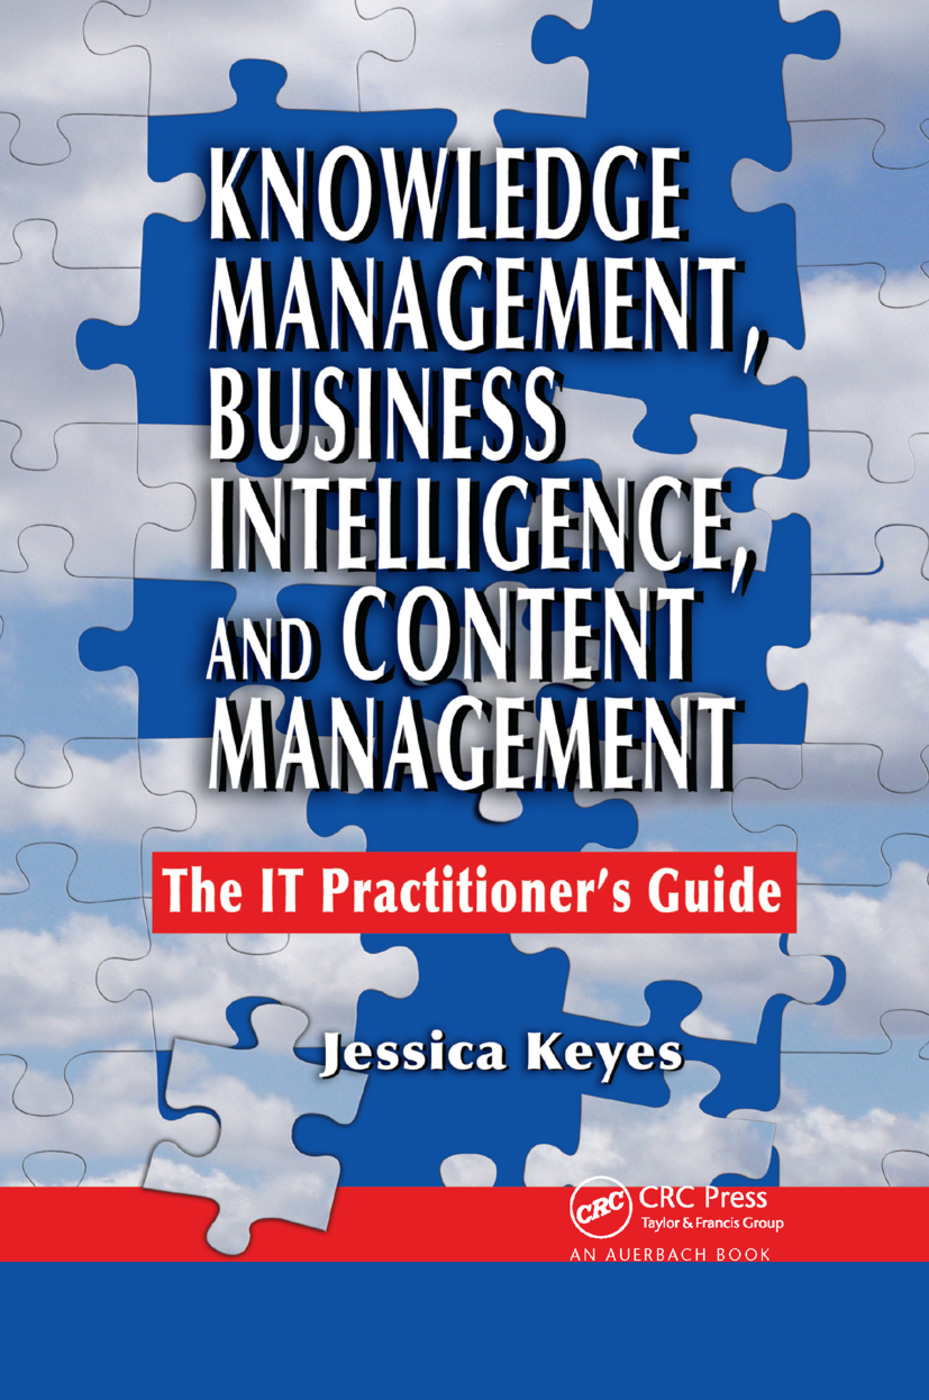 Knowledge Management, Business Intelligence, and Content Management: The IT Practitioner's Guide book cover